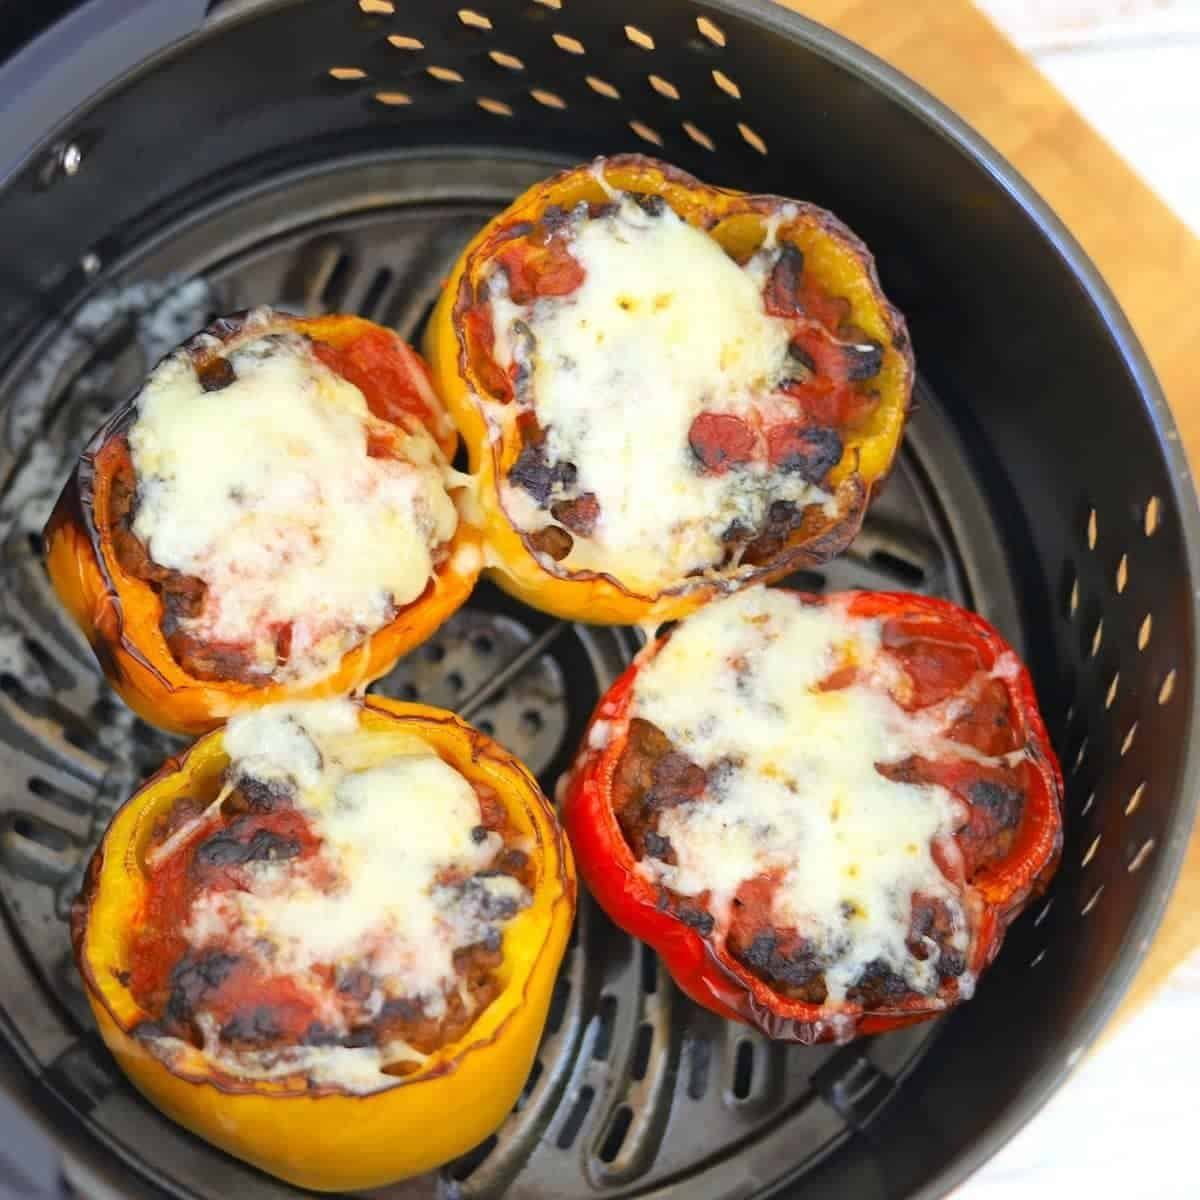 Stuffed Peppers in the air fryer